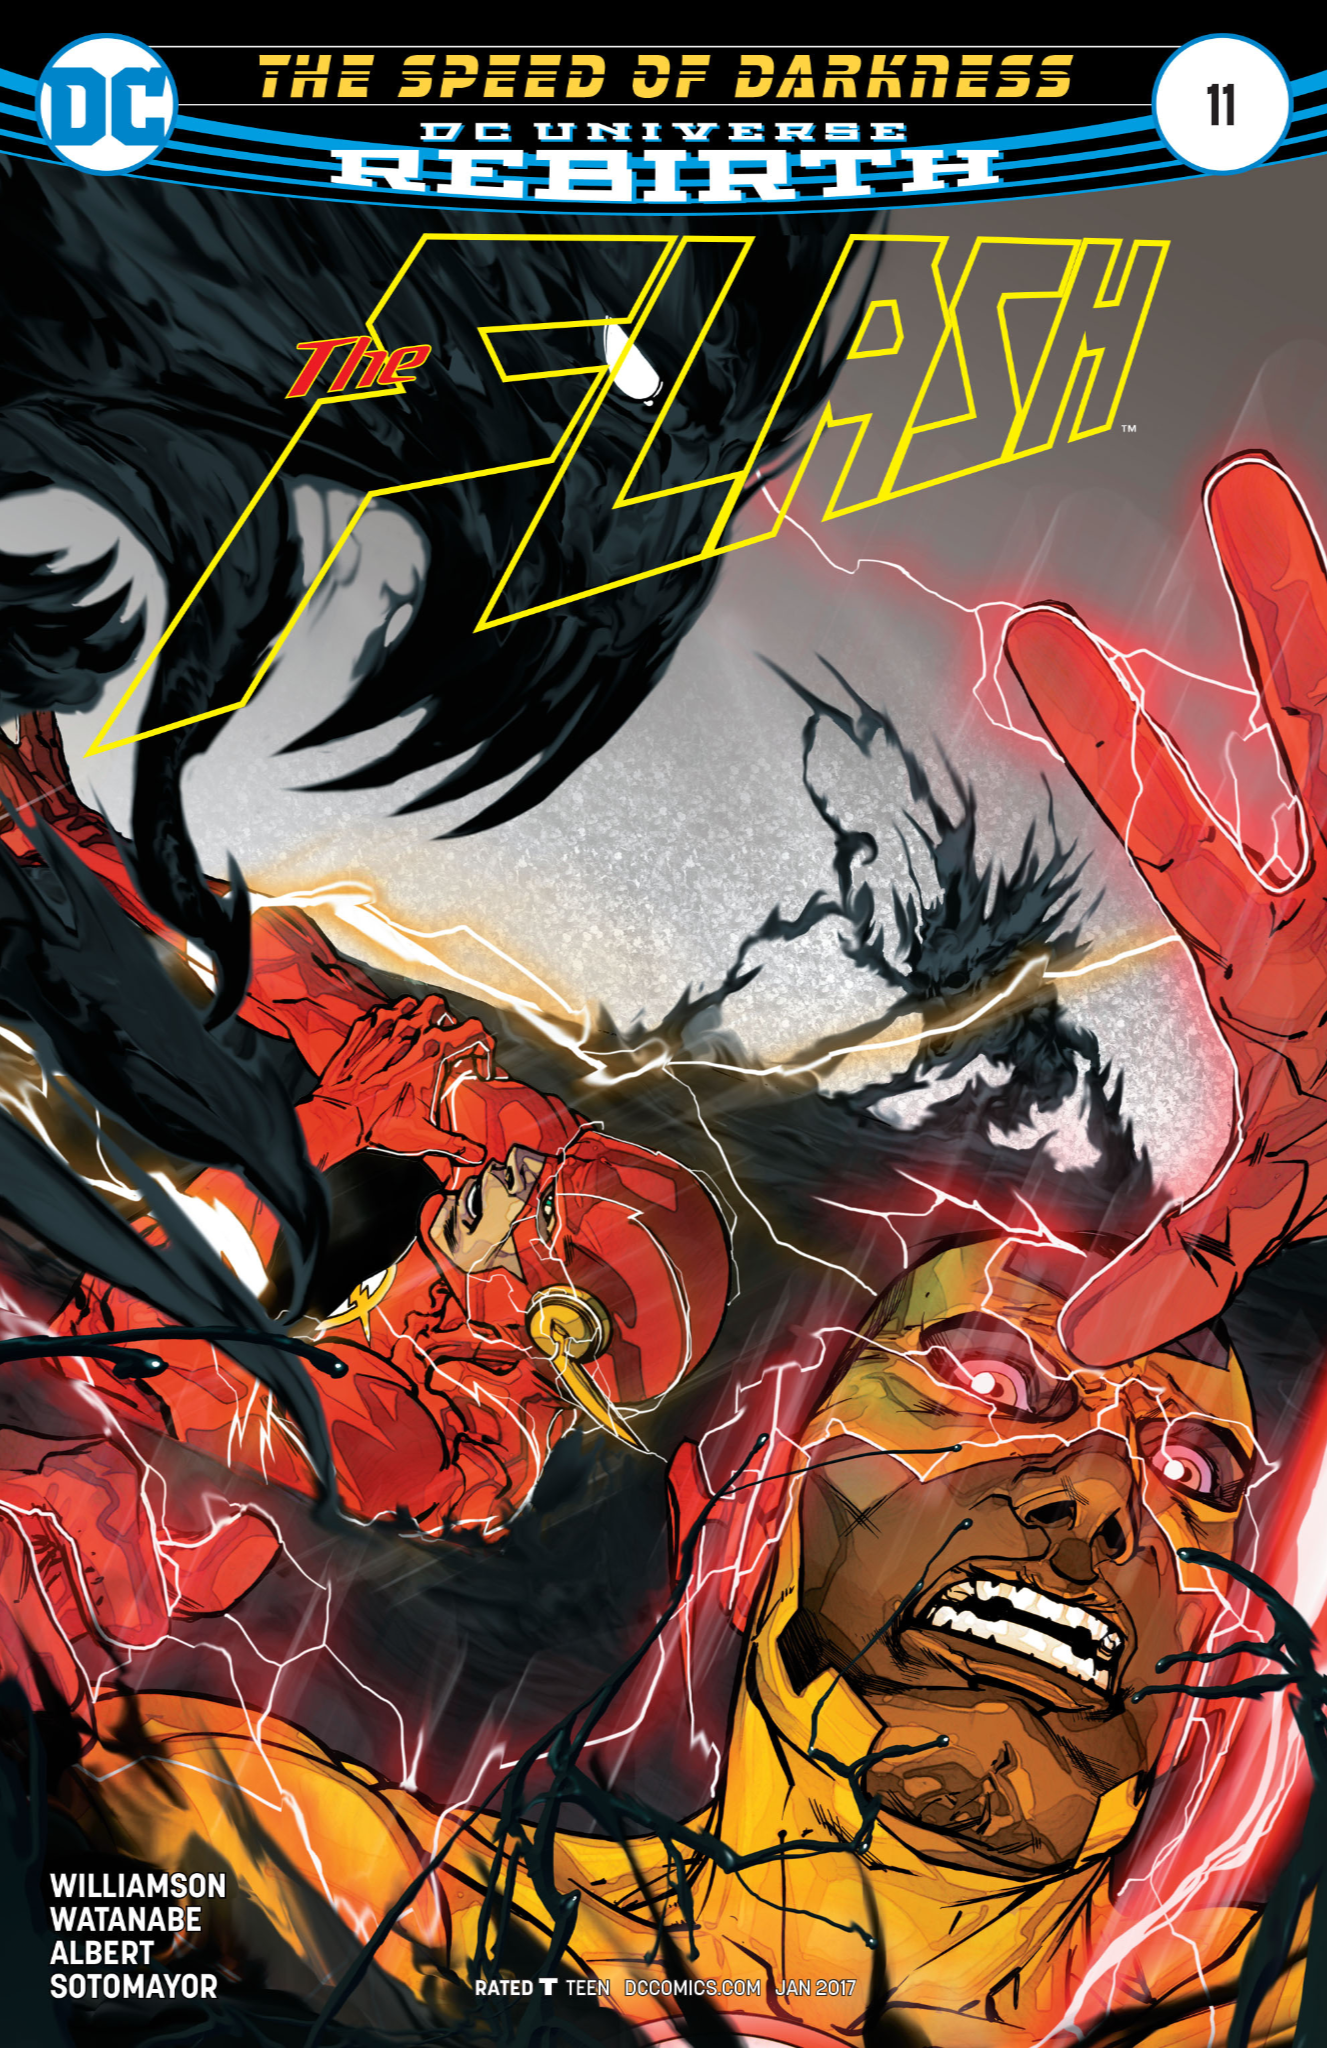 The Flash 11 review